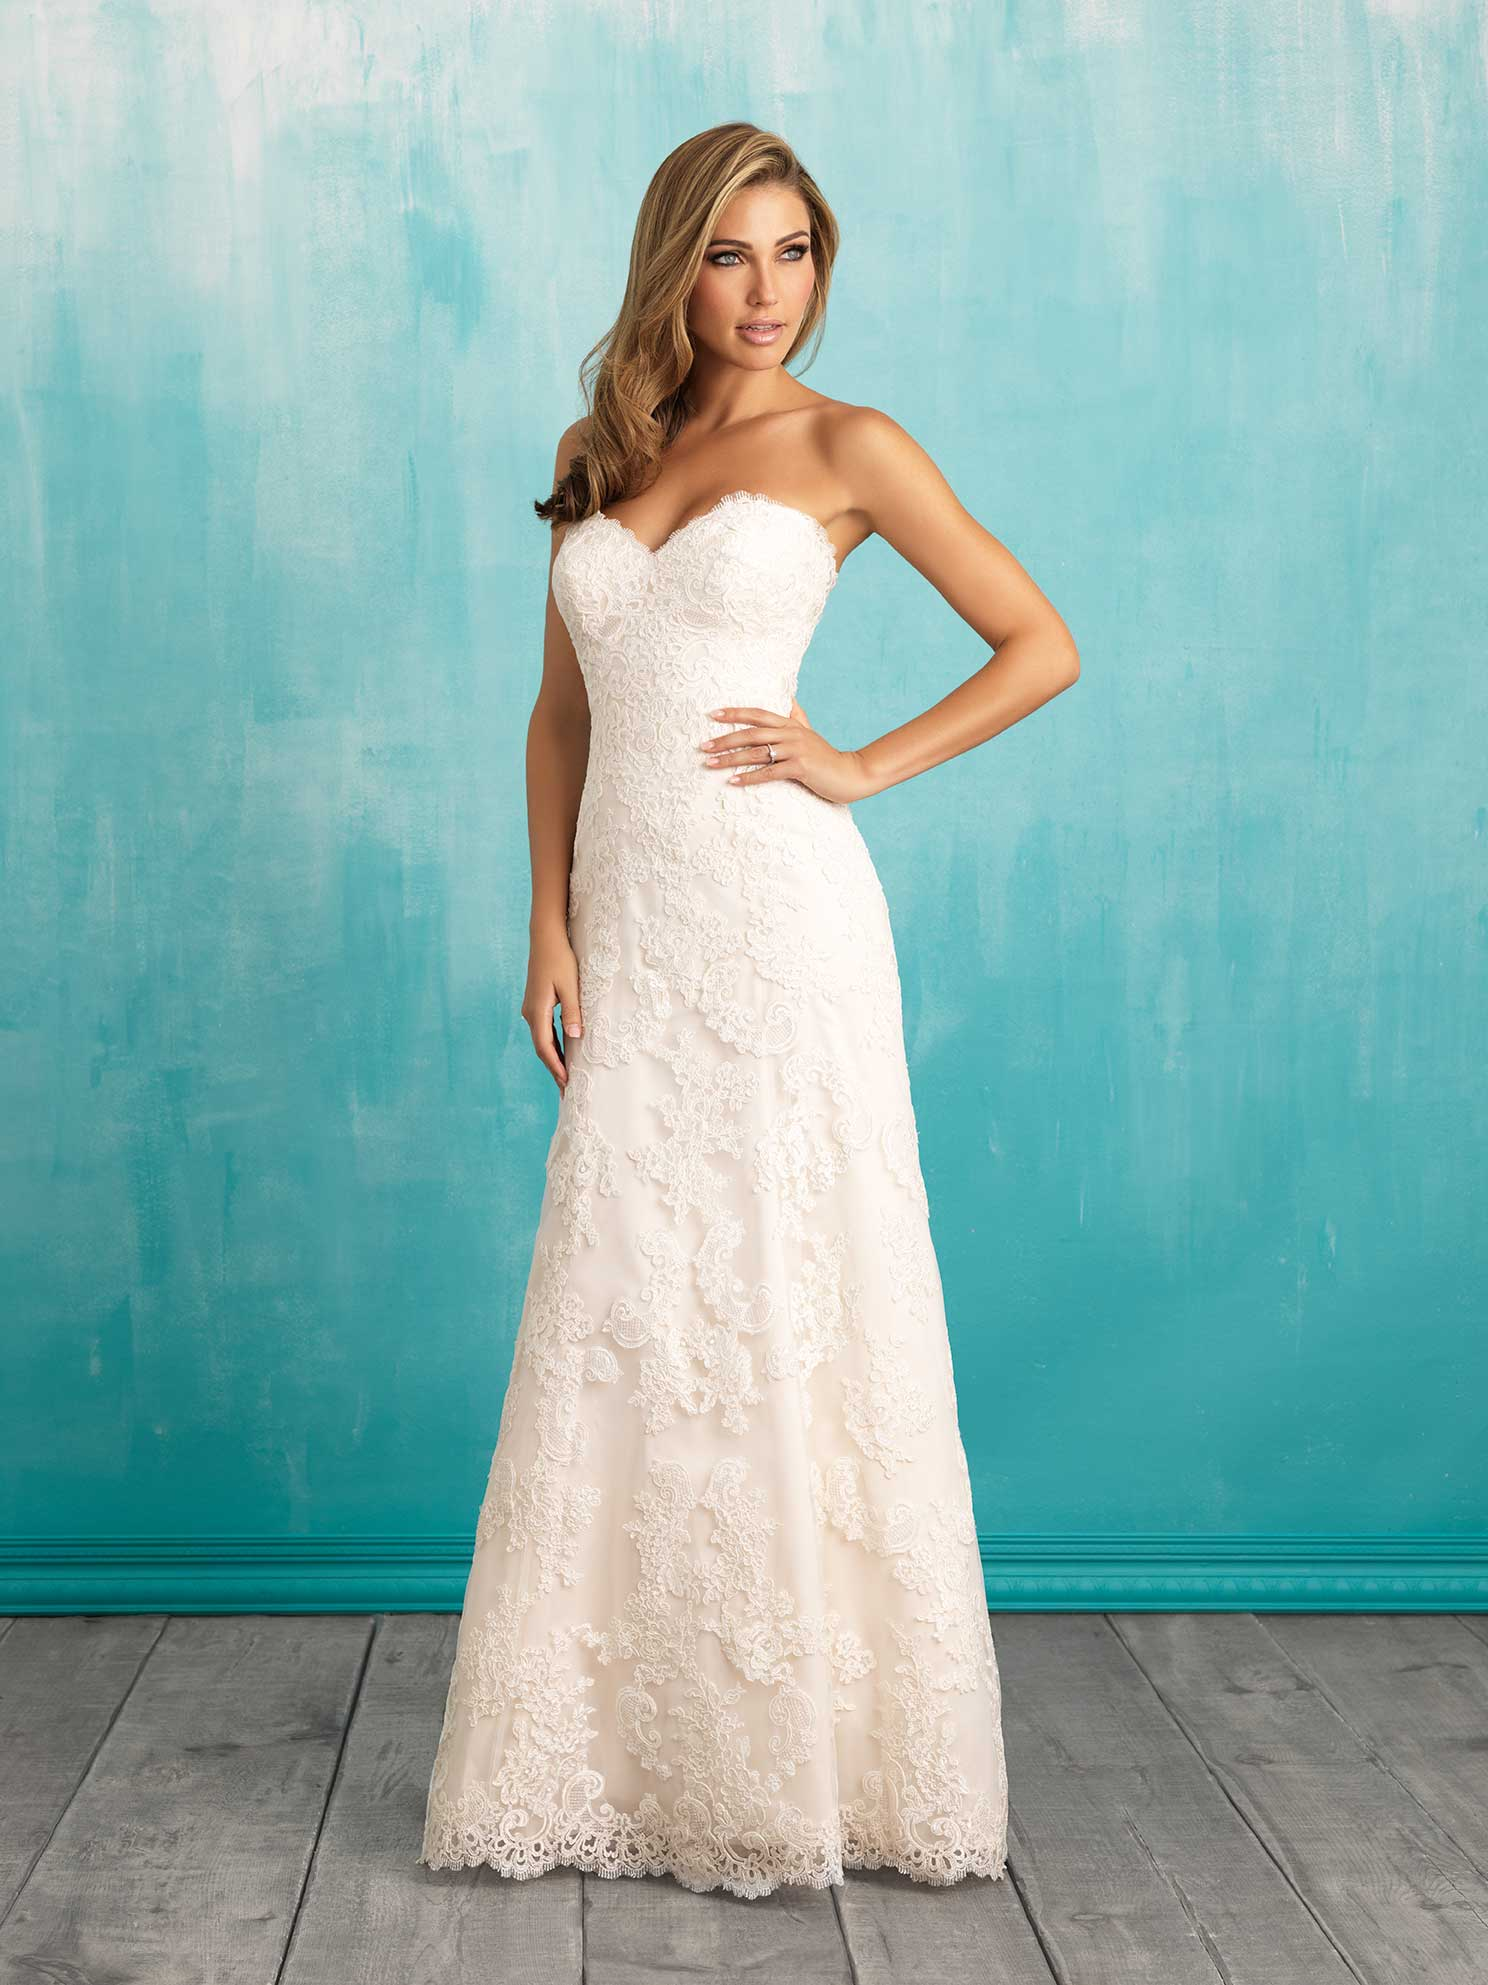 A lace dress by Allure Bridal